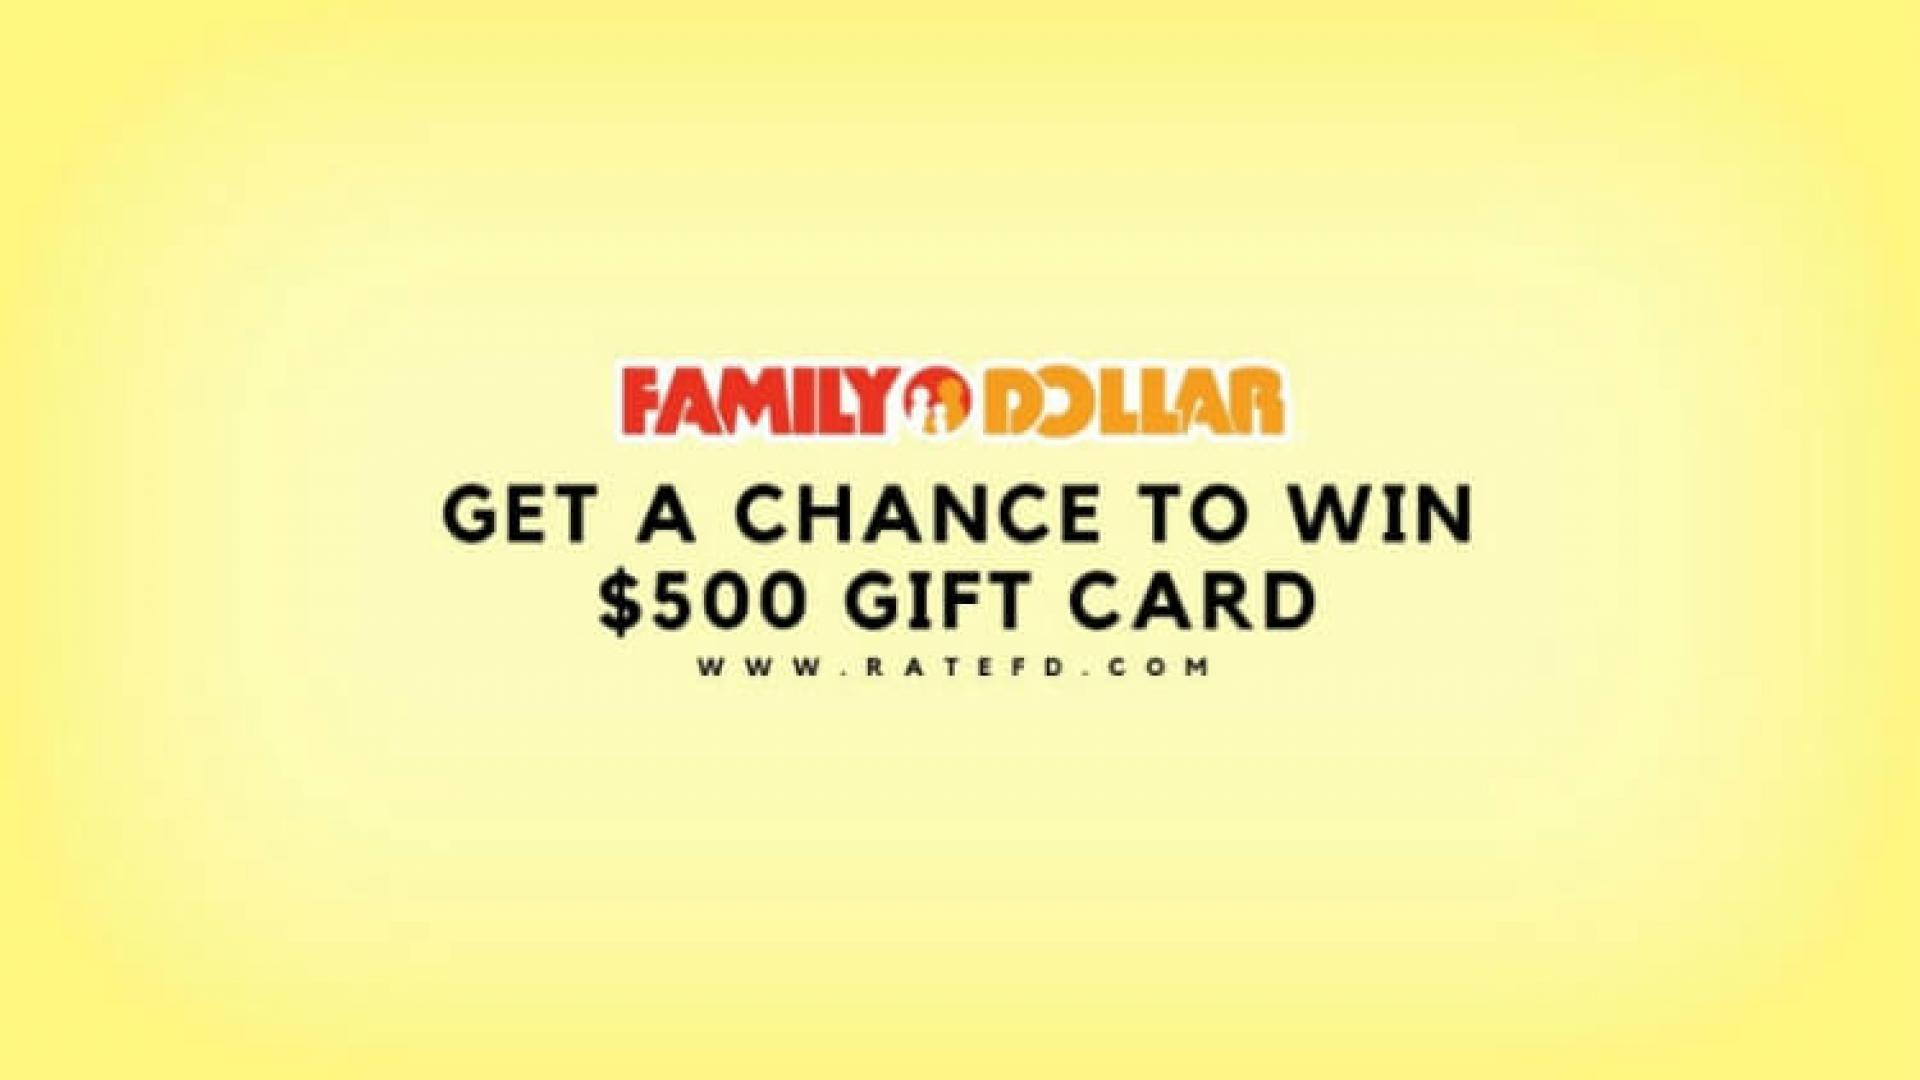 Ratefd Survey Step By Step Guide | Family Dollar Survey